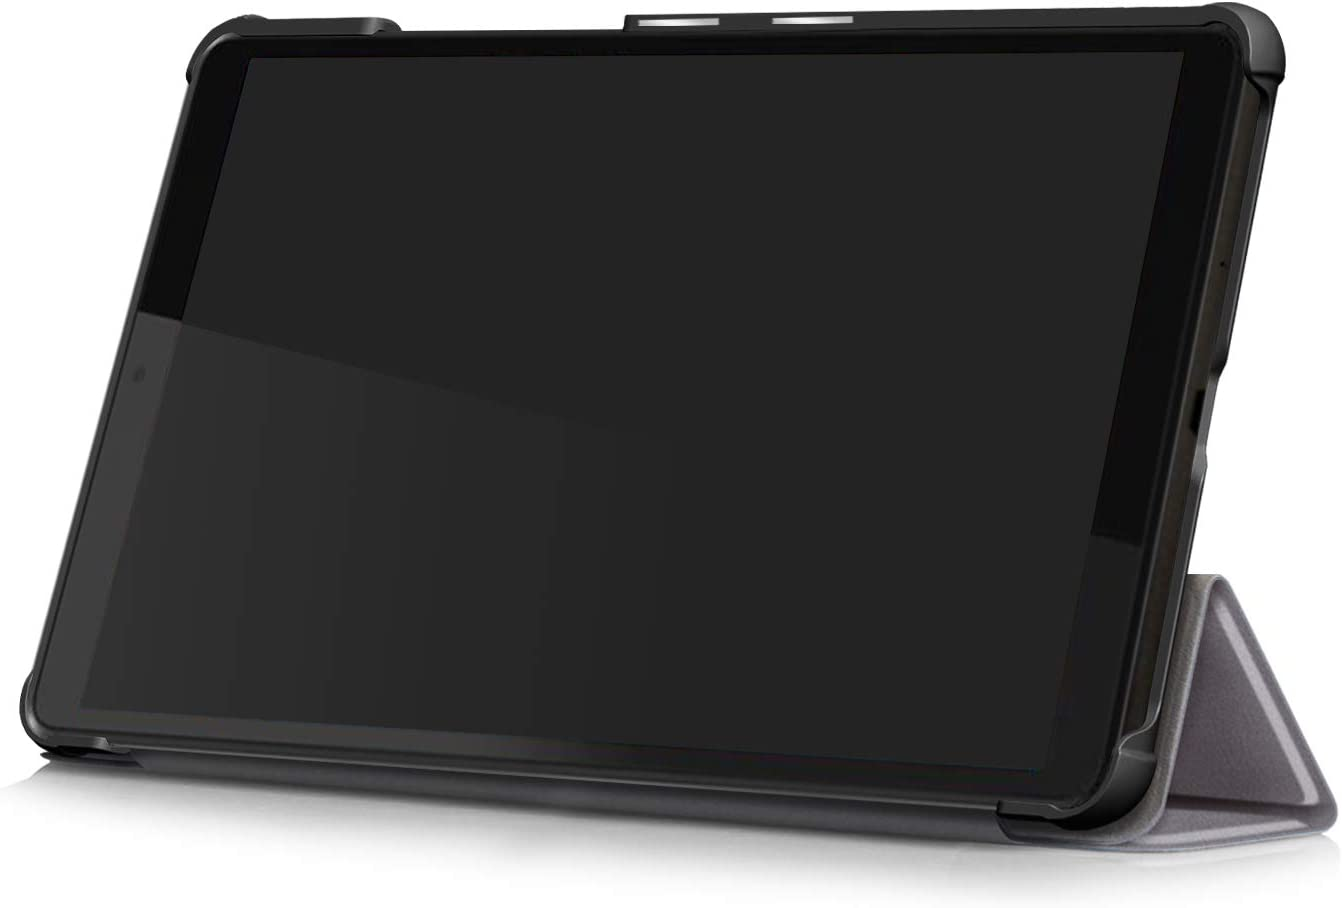 Shinyzone Slim Case for Lenovo Tab M8 8 inch Tablet TB-8505F//8505X,Trifold Stand Smart Cover,Auto Sleep//Wake Function,TPU Bumper Reinforced Corner Protective Case,Black